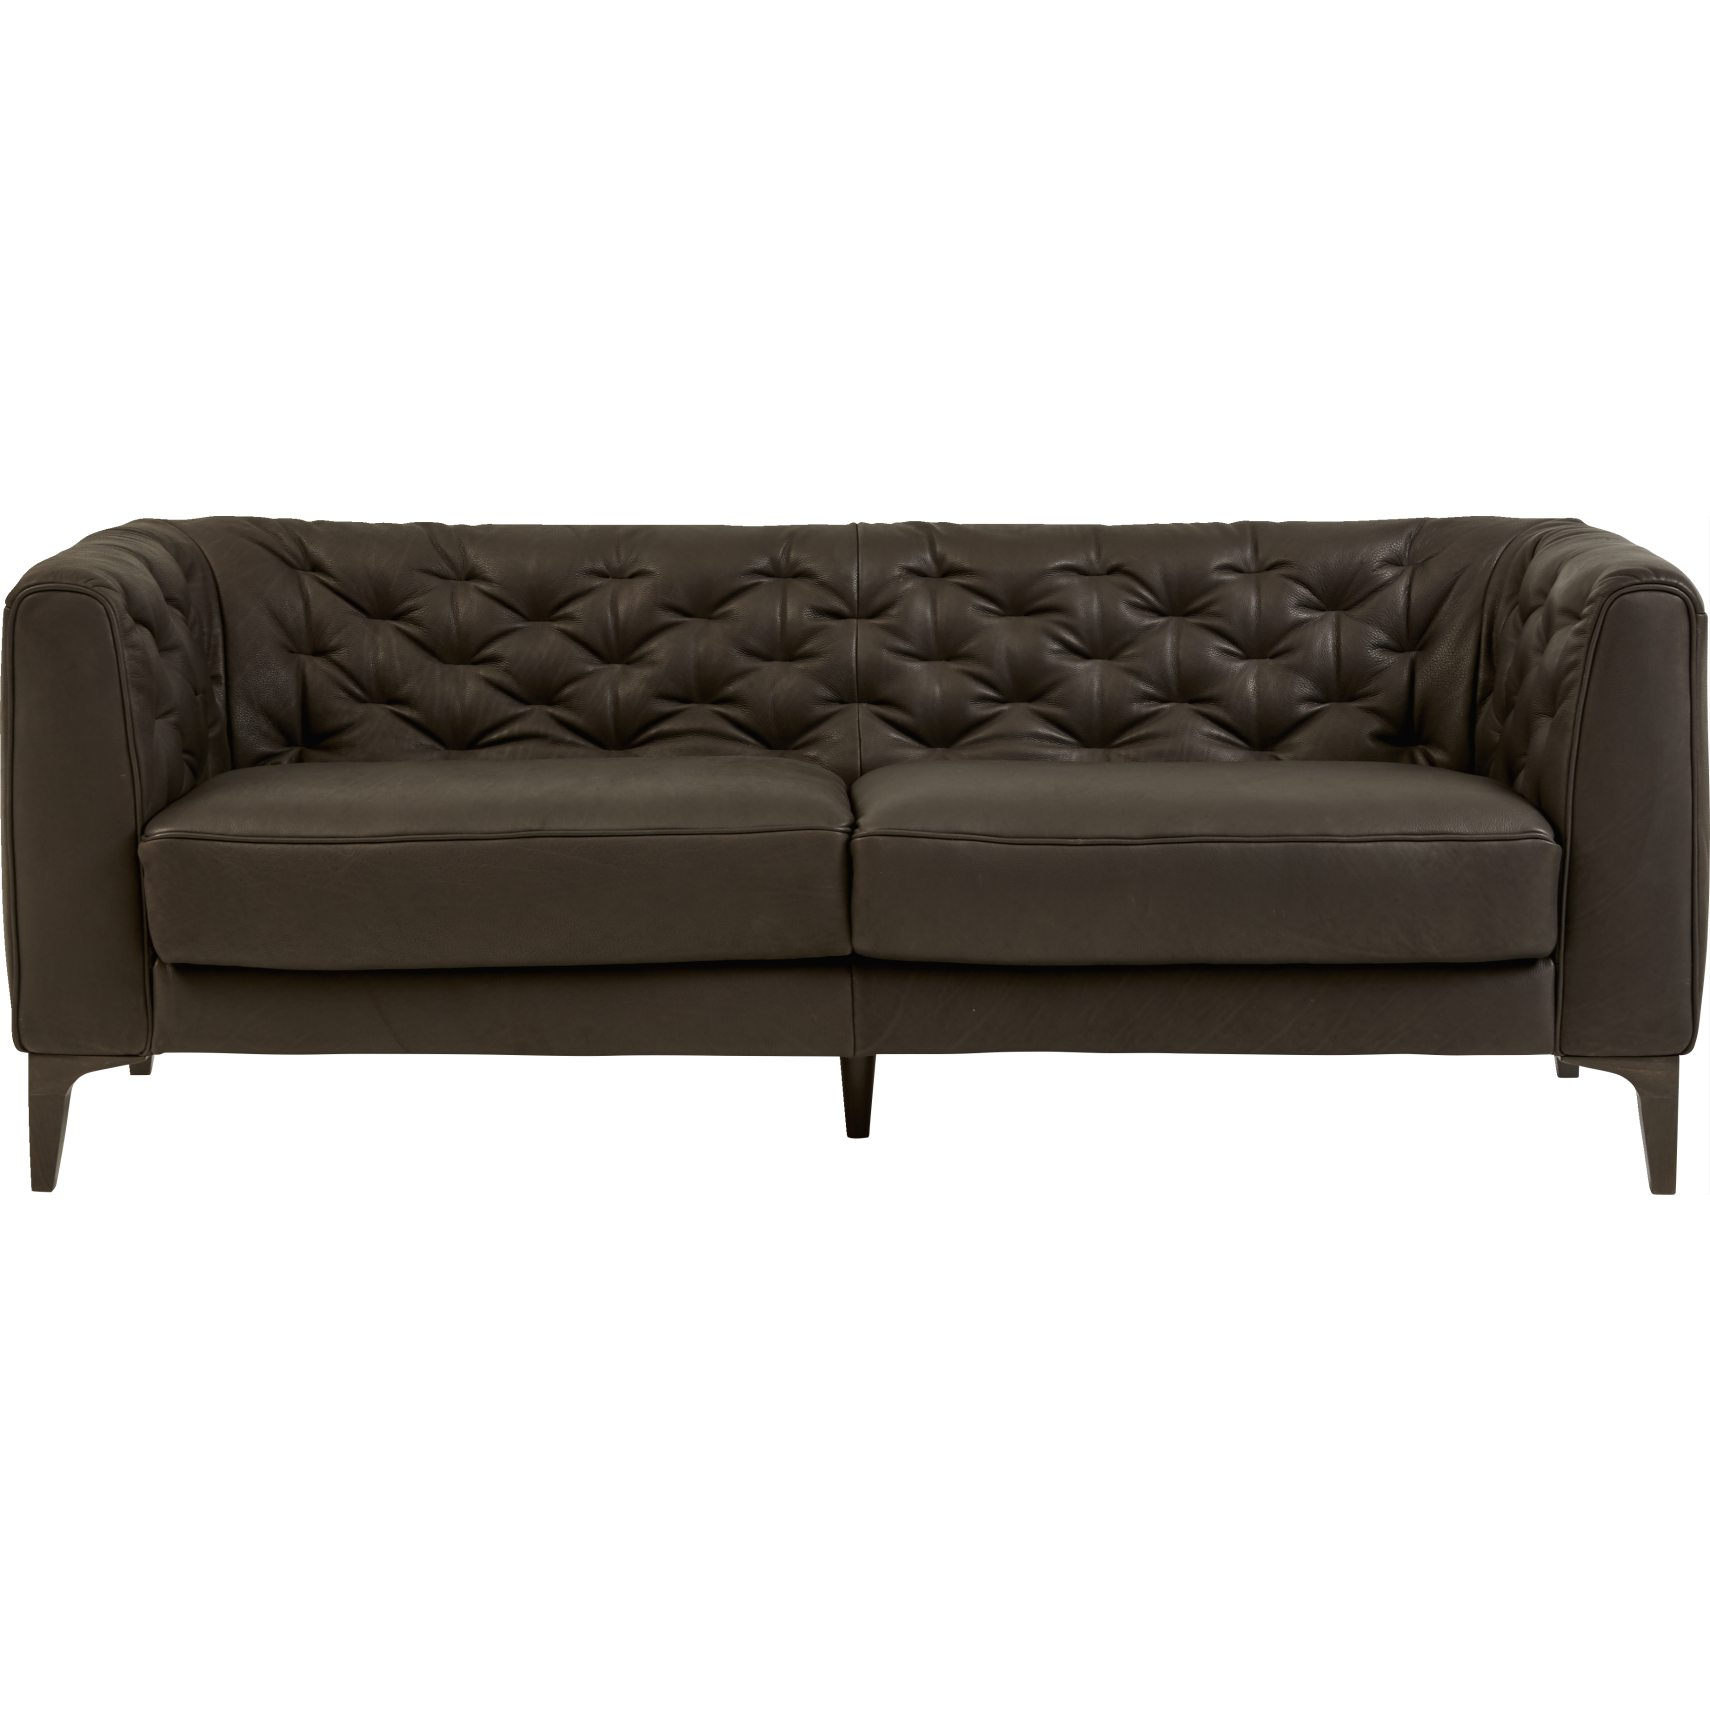 Natuzzi Editions B988 009 3 pers Sofa - Madison 20RE Coffee læder og ben i wengébejdset træ